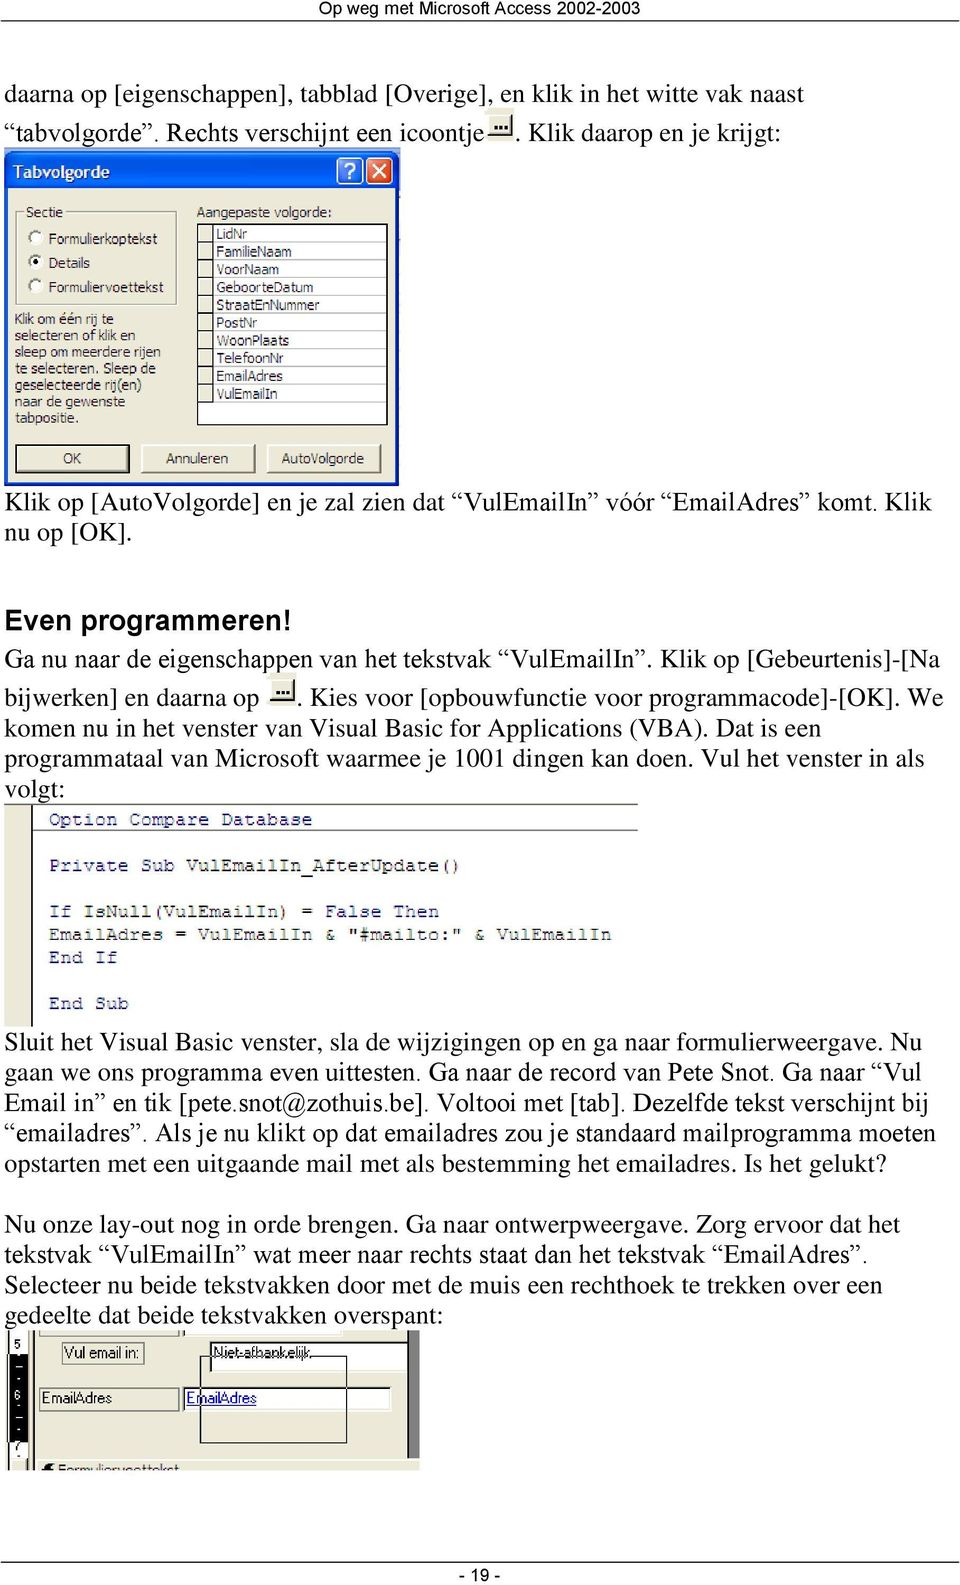 Klik op [Gebeurtenis]-[Na bijwerken] en daarna op. Kies voor [opbouwfunctie voor programmacode]-[ok]. We komen nu in het venster van Visual Basic for Applications (VBA).